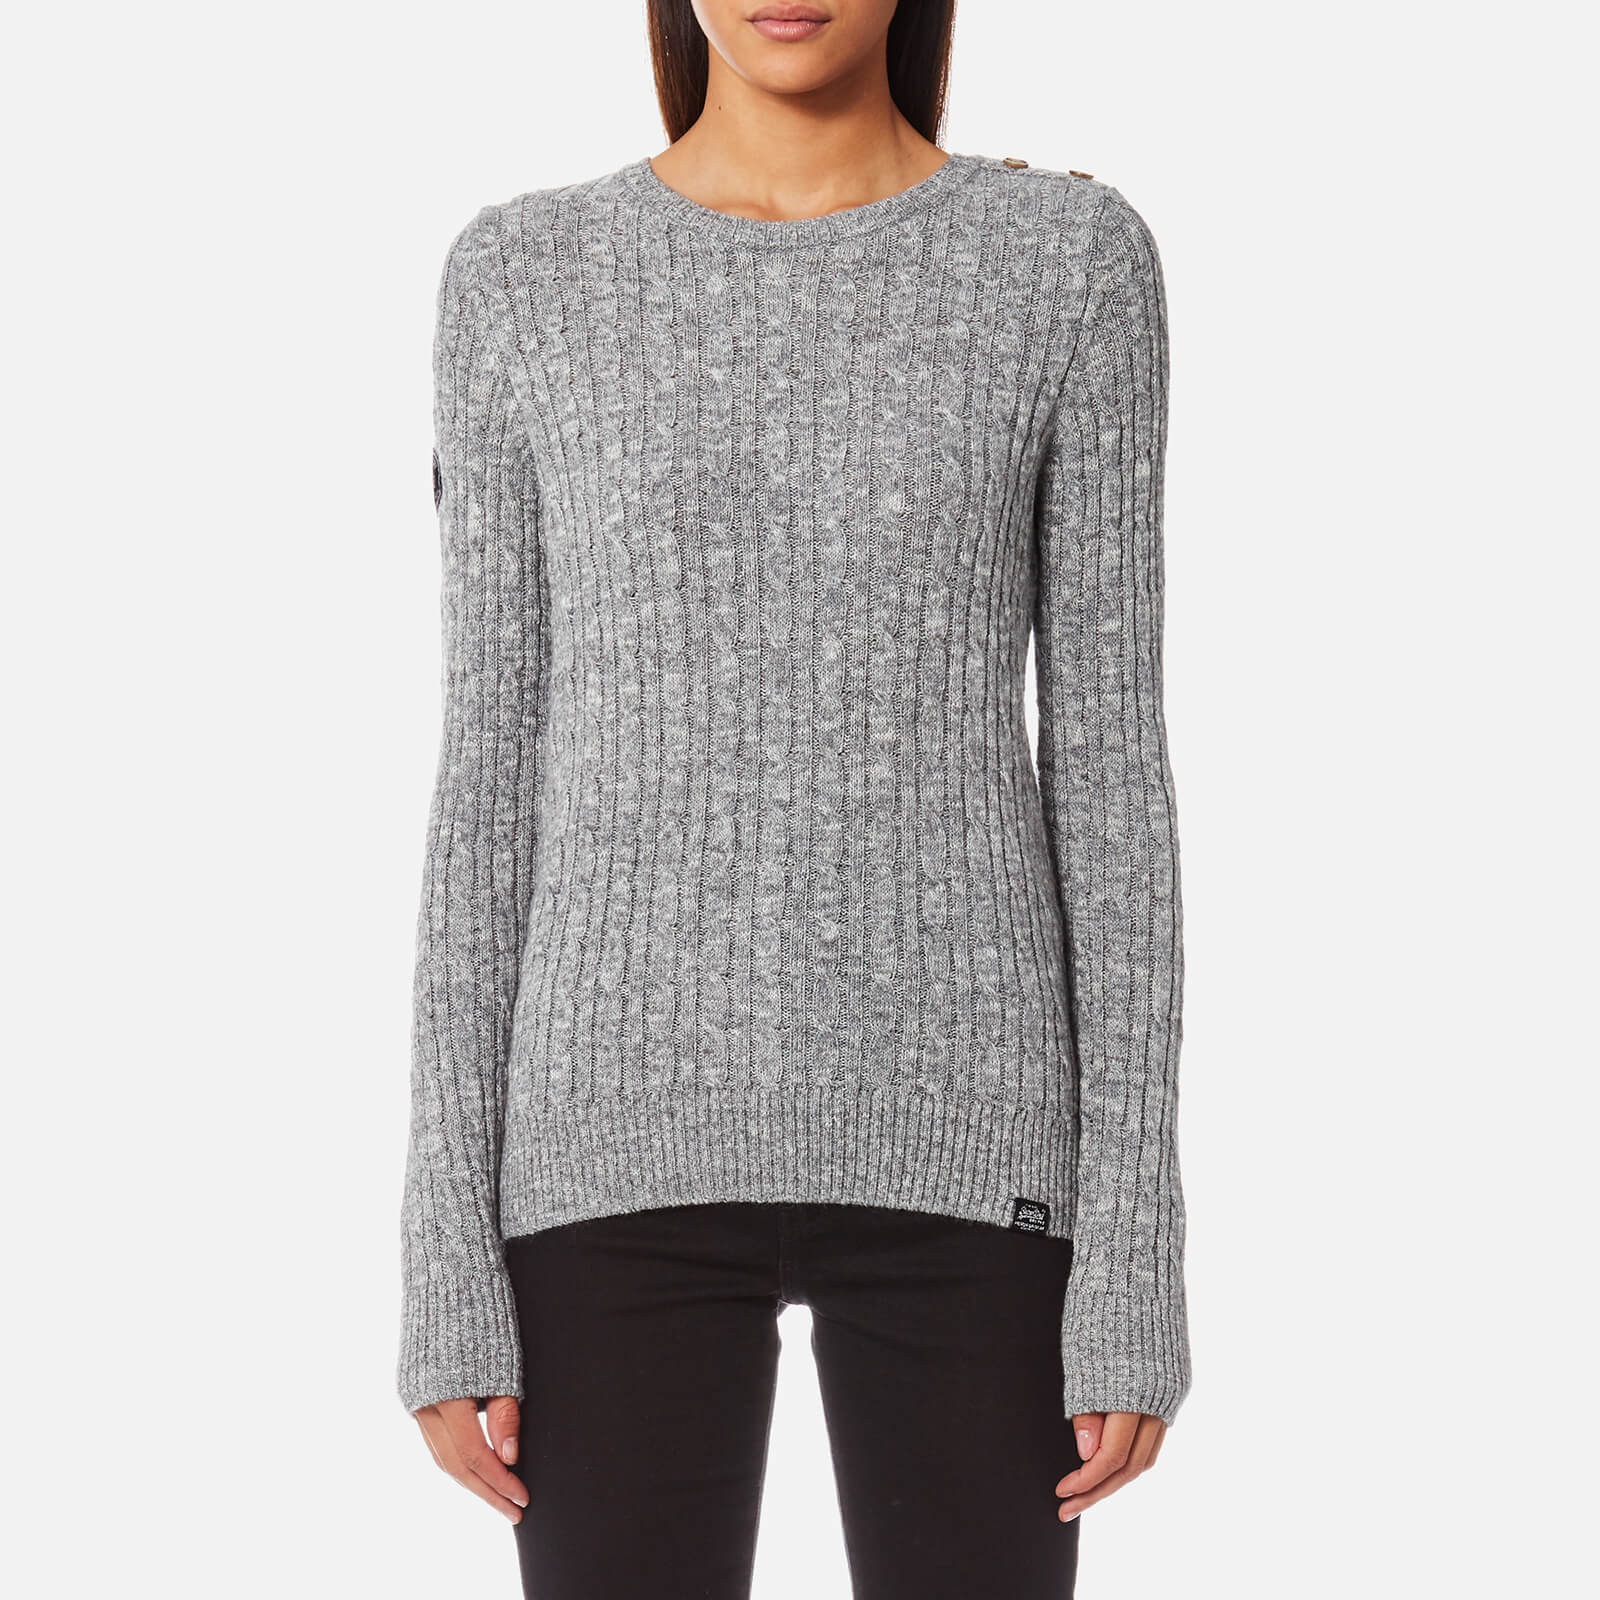 8af86d34e Superdry Women s Croyde Cable Knitted Jumper - Gamma Grey Marl Womens  Clothing